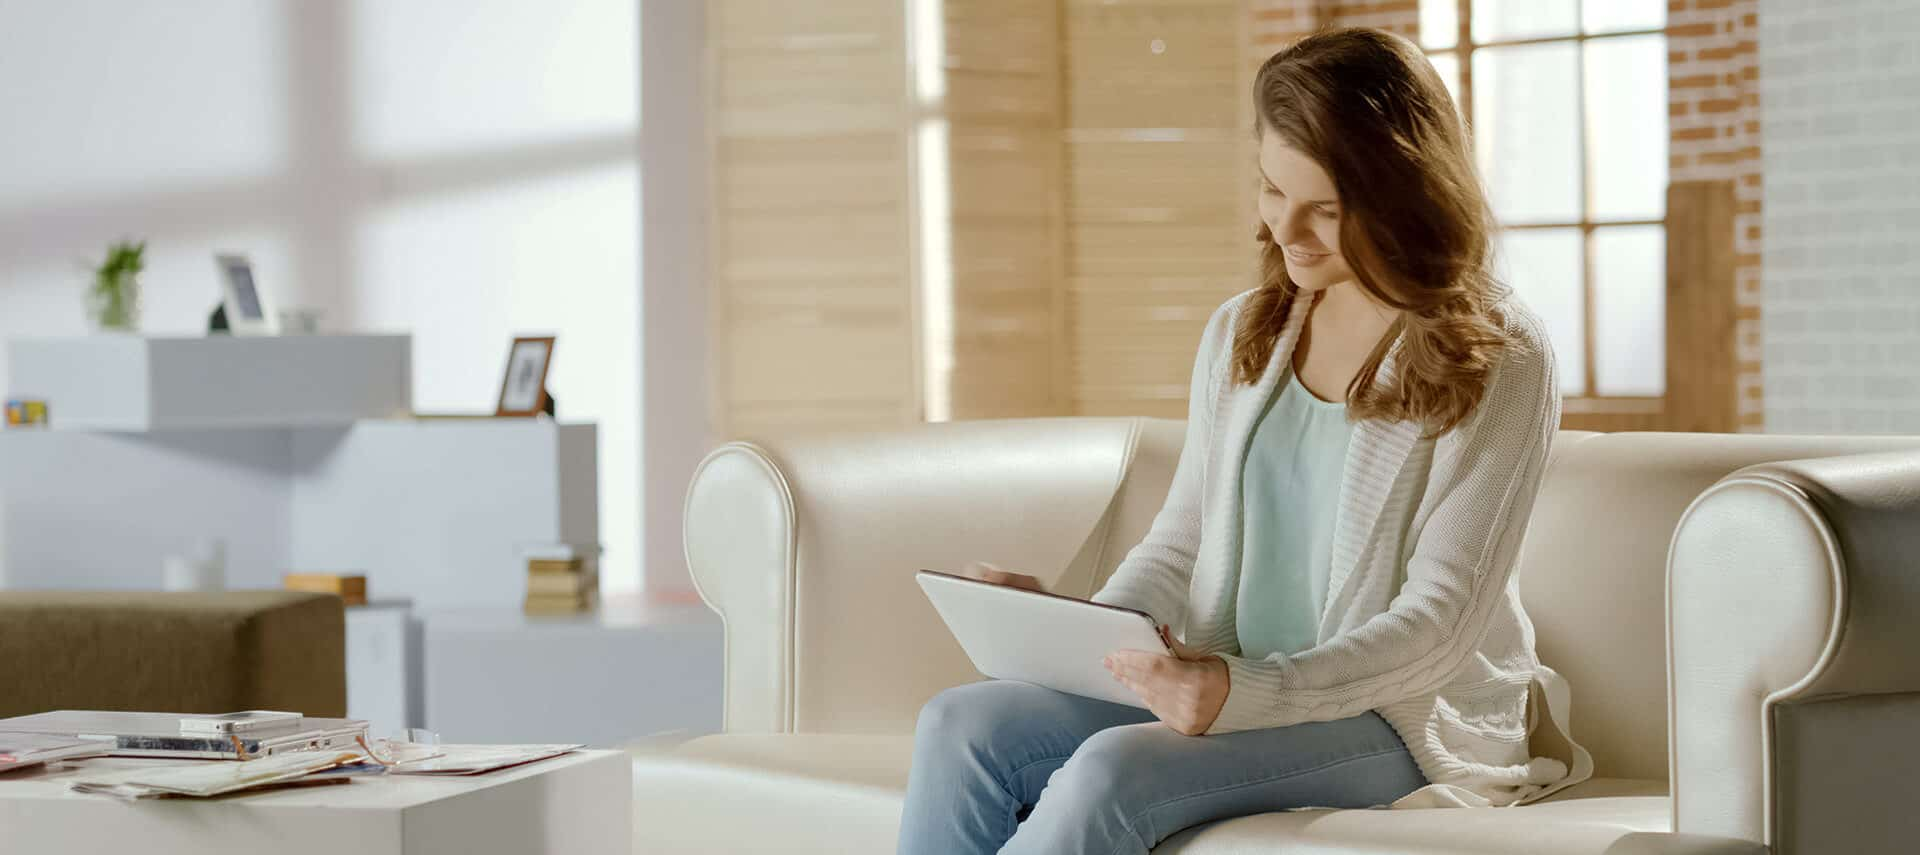 Brunette woman on sofa with a tablet in a living room.